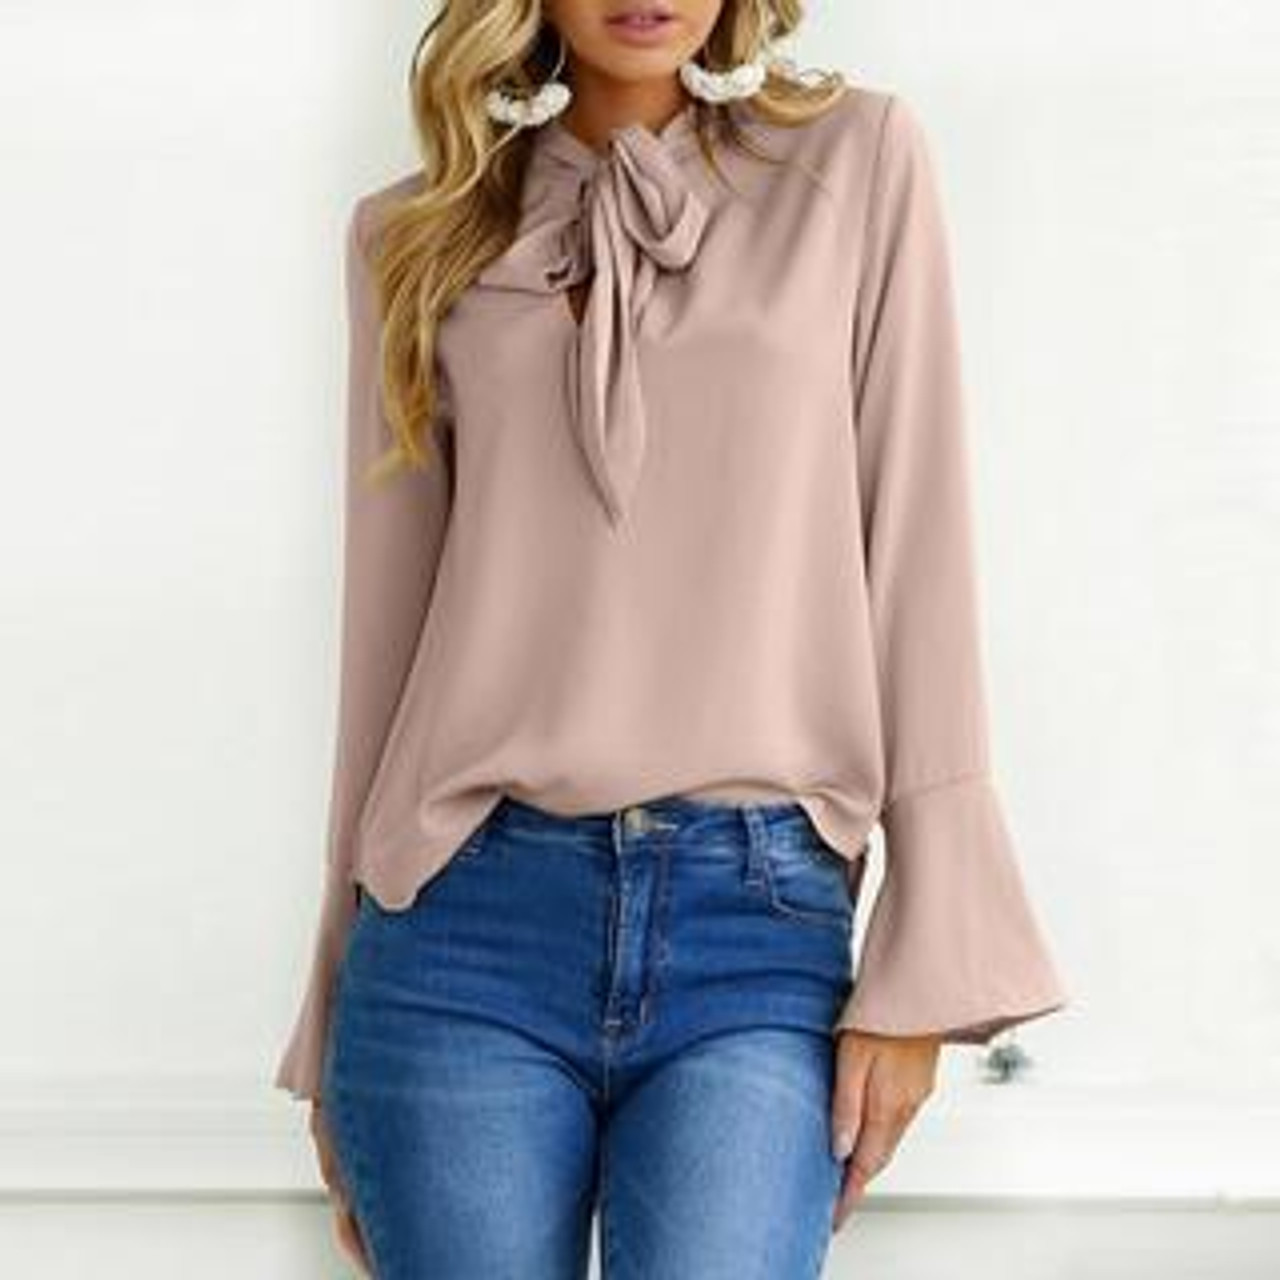 Womens Tops & Shirts